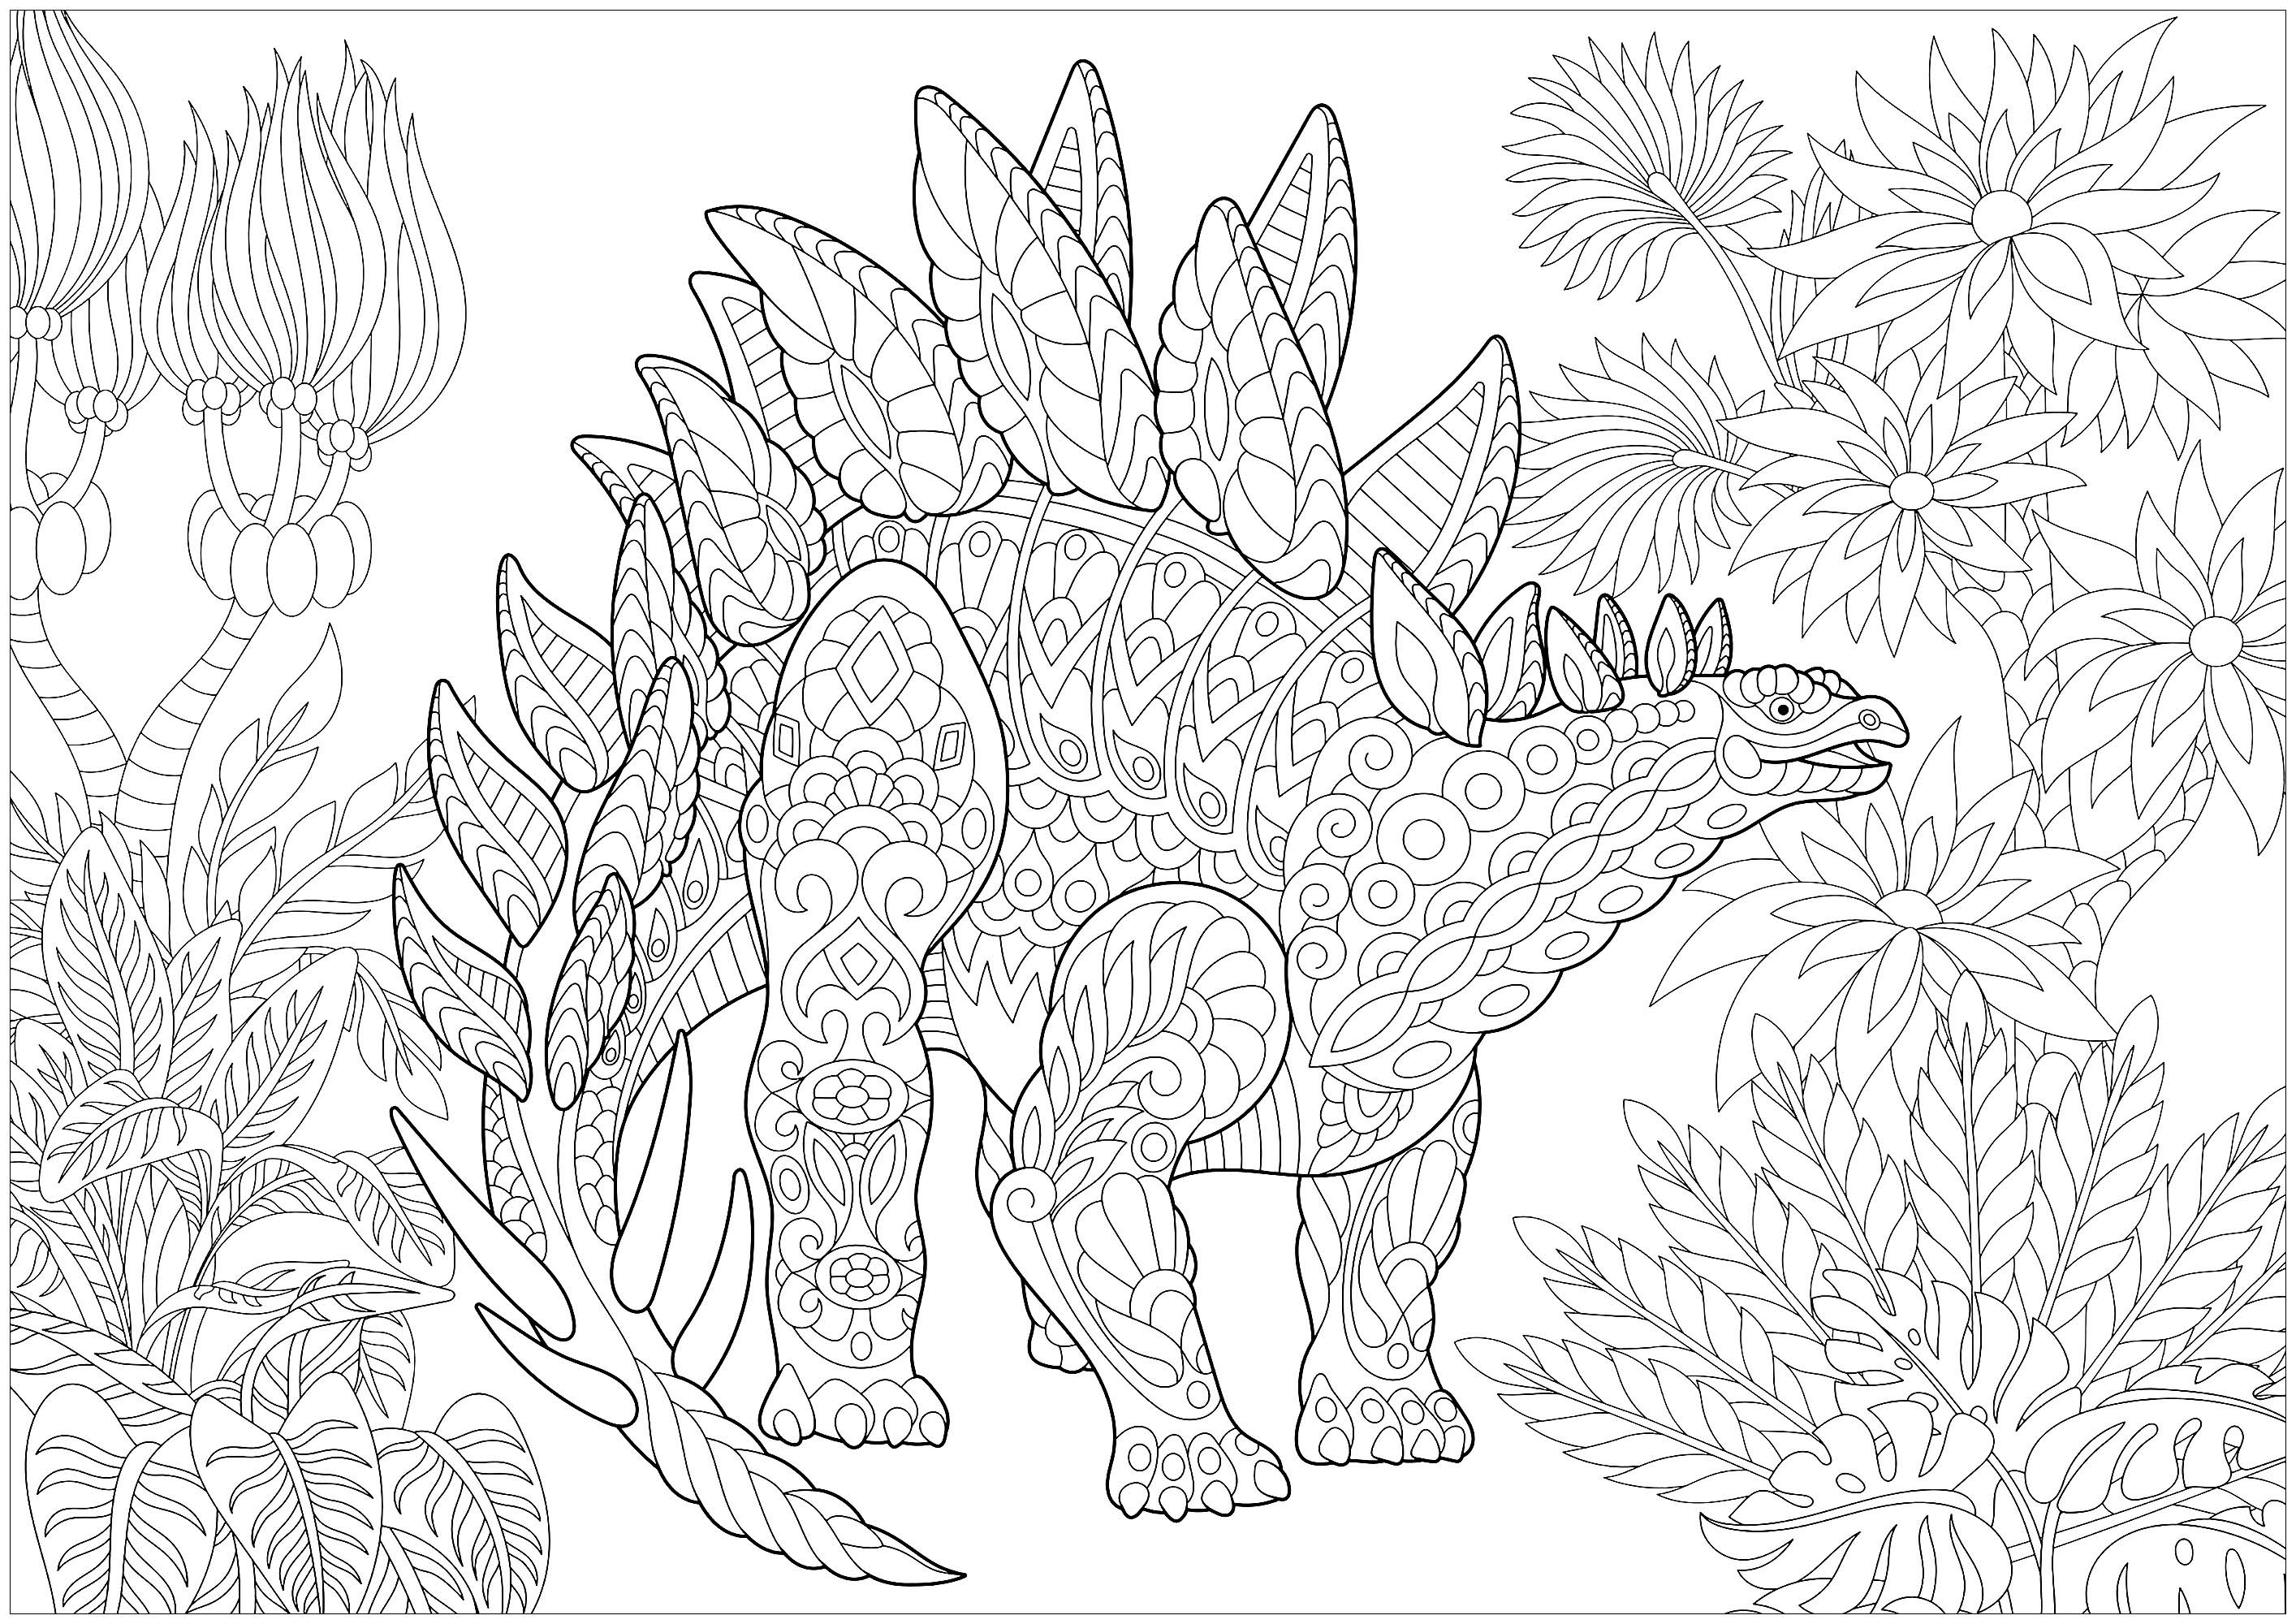 Stegosaurus Dinosaurs Adult Coloring Pages